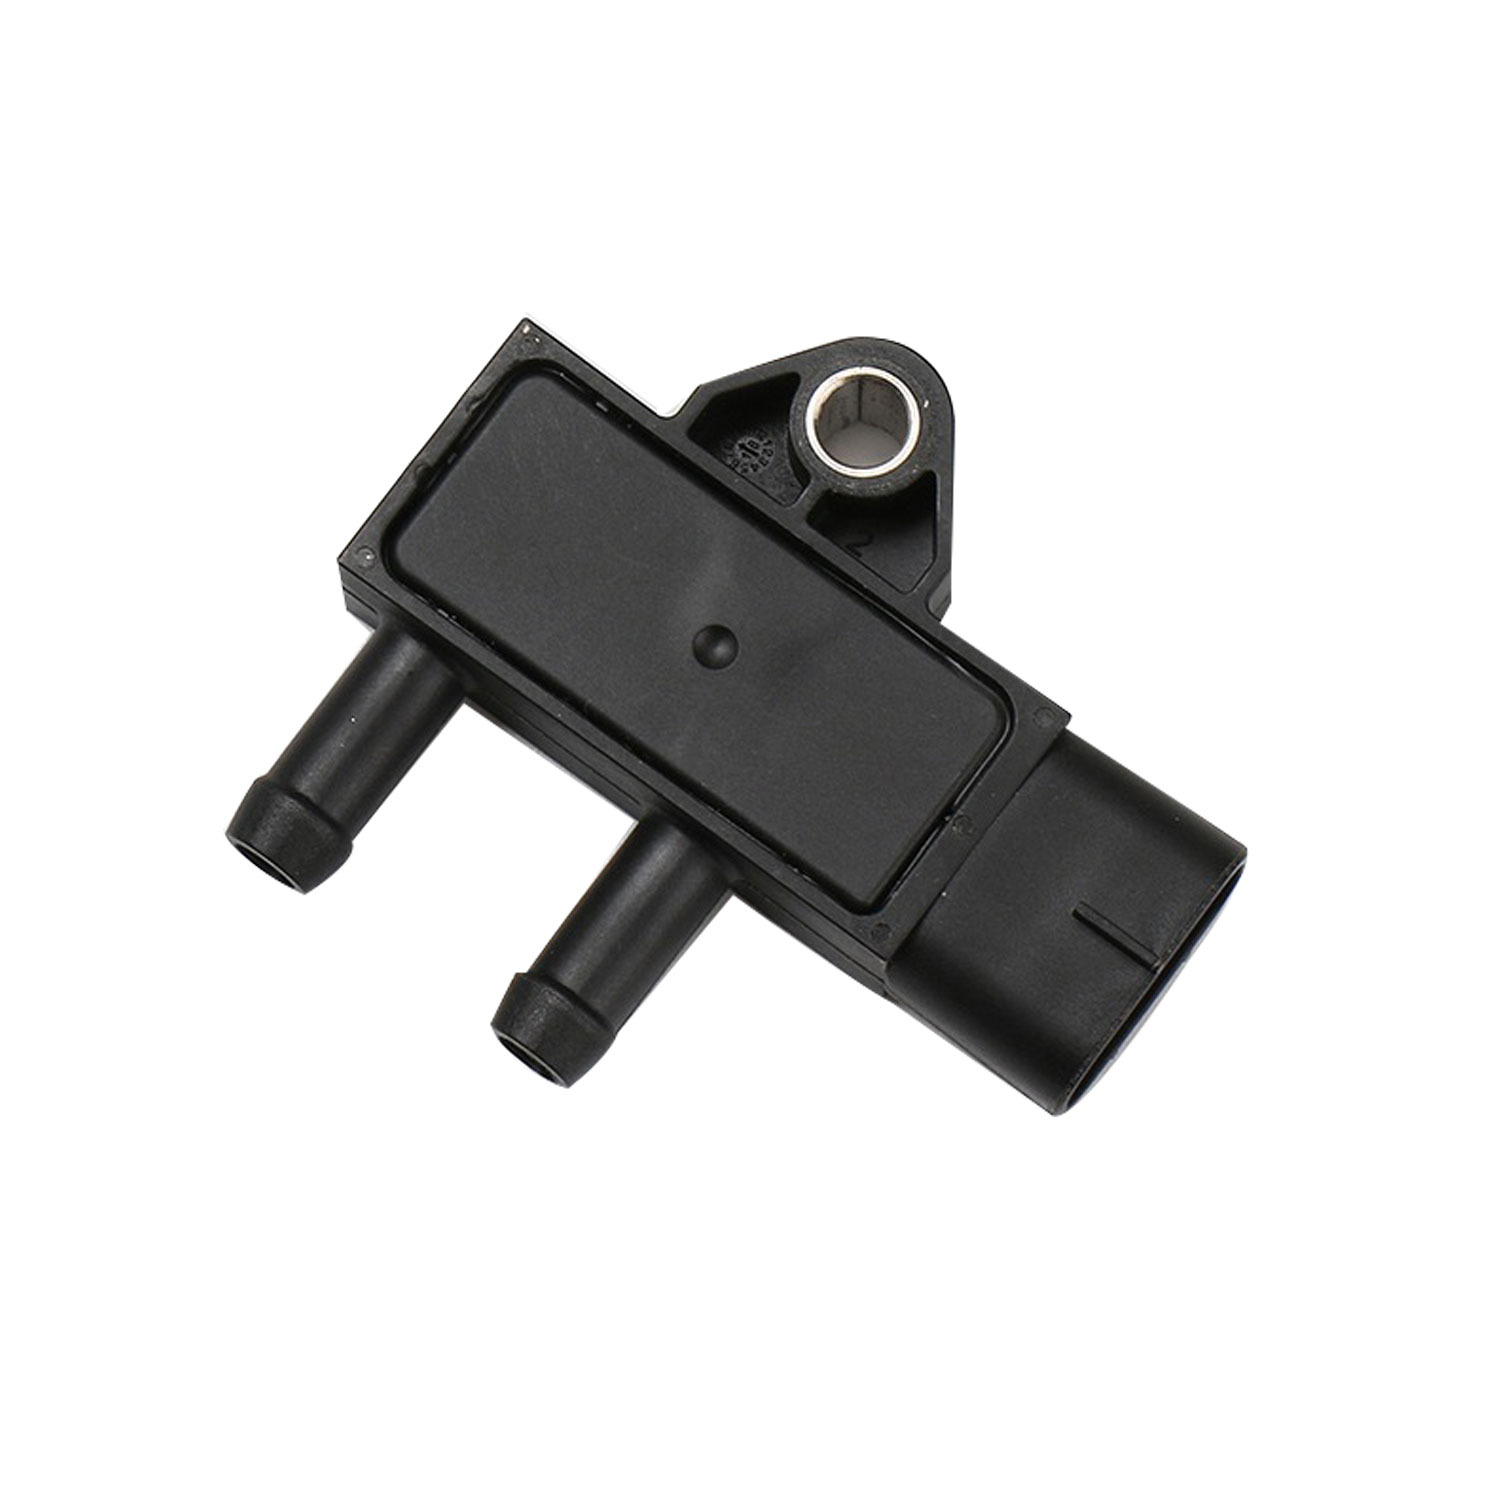 2894872 a034n450 dpf diesel particulate filter differential exhaust pressure sensor for cummins qsb 6.7 isf 2.8 3.8 engine